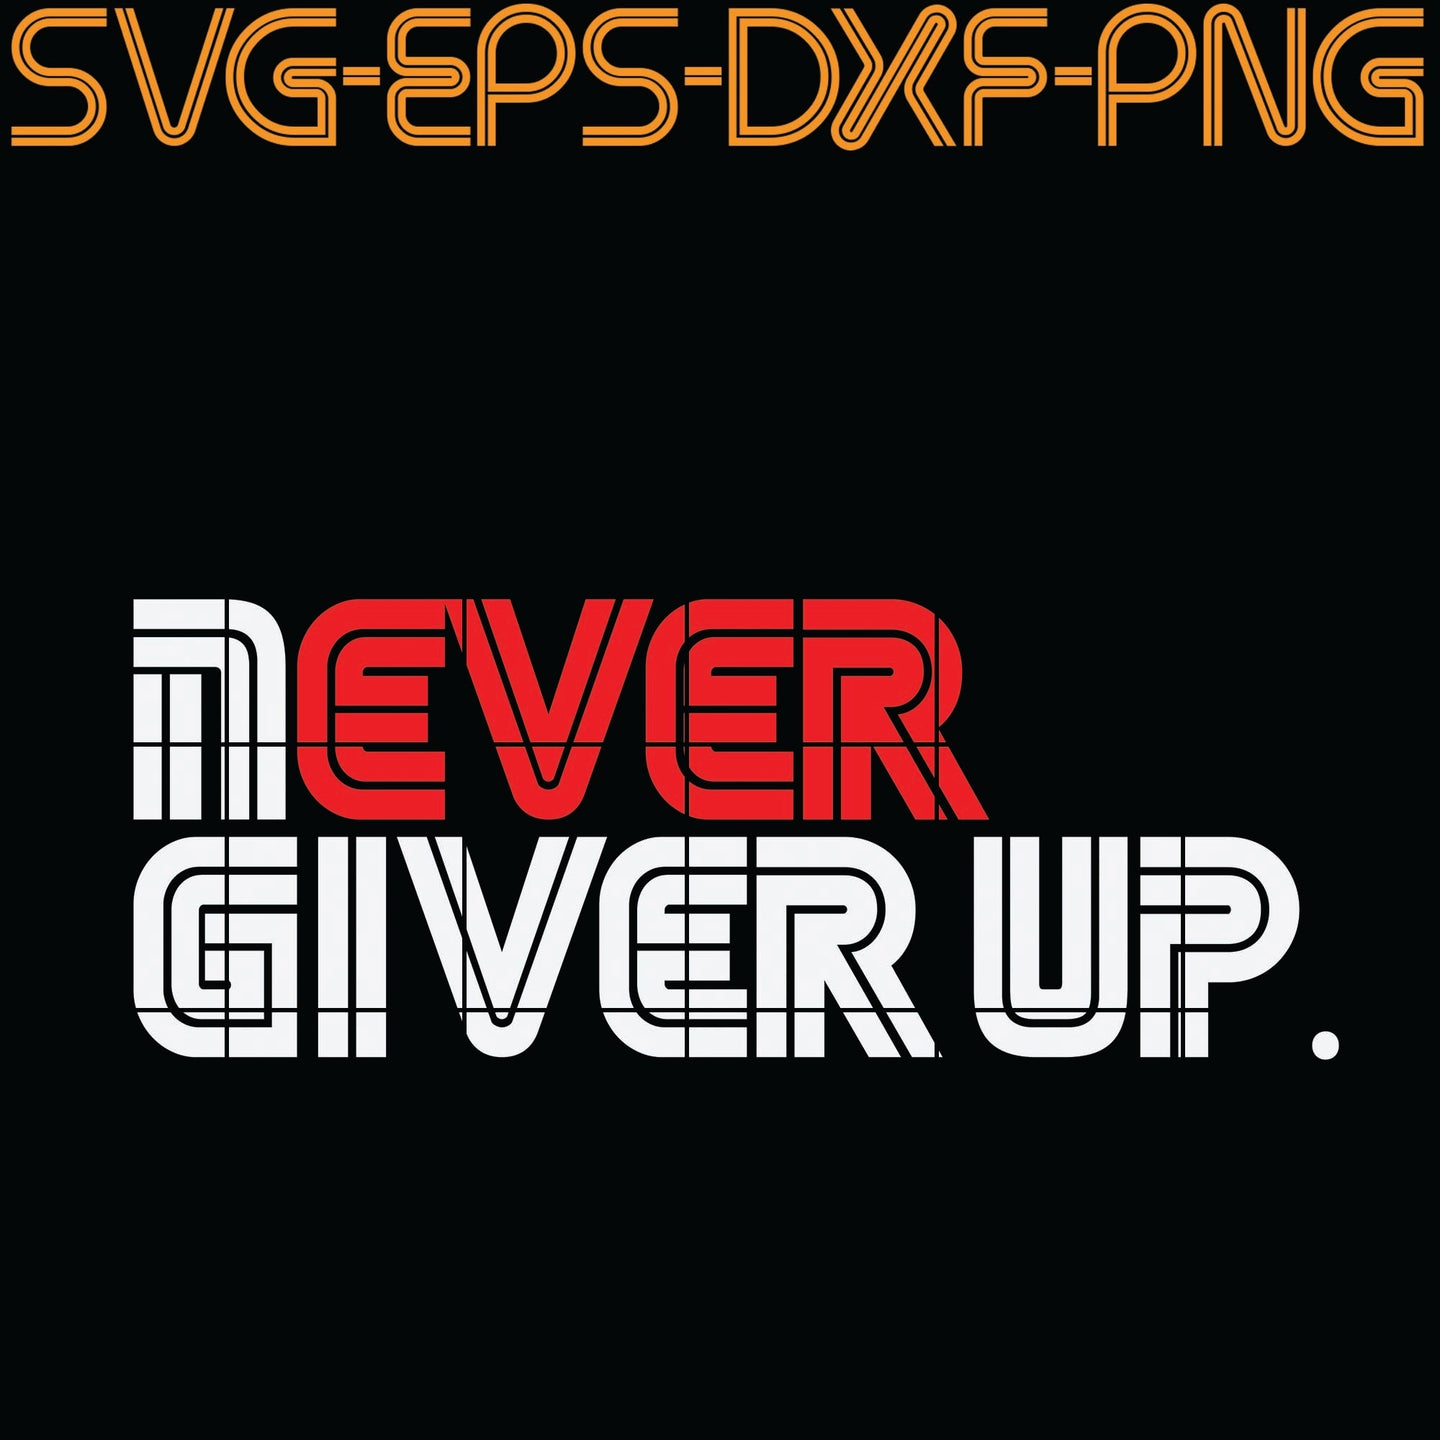 never give up, Quotes, PNG, EPS, DXF, Digital Download